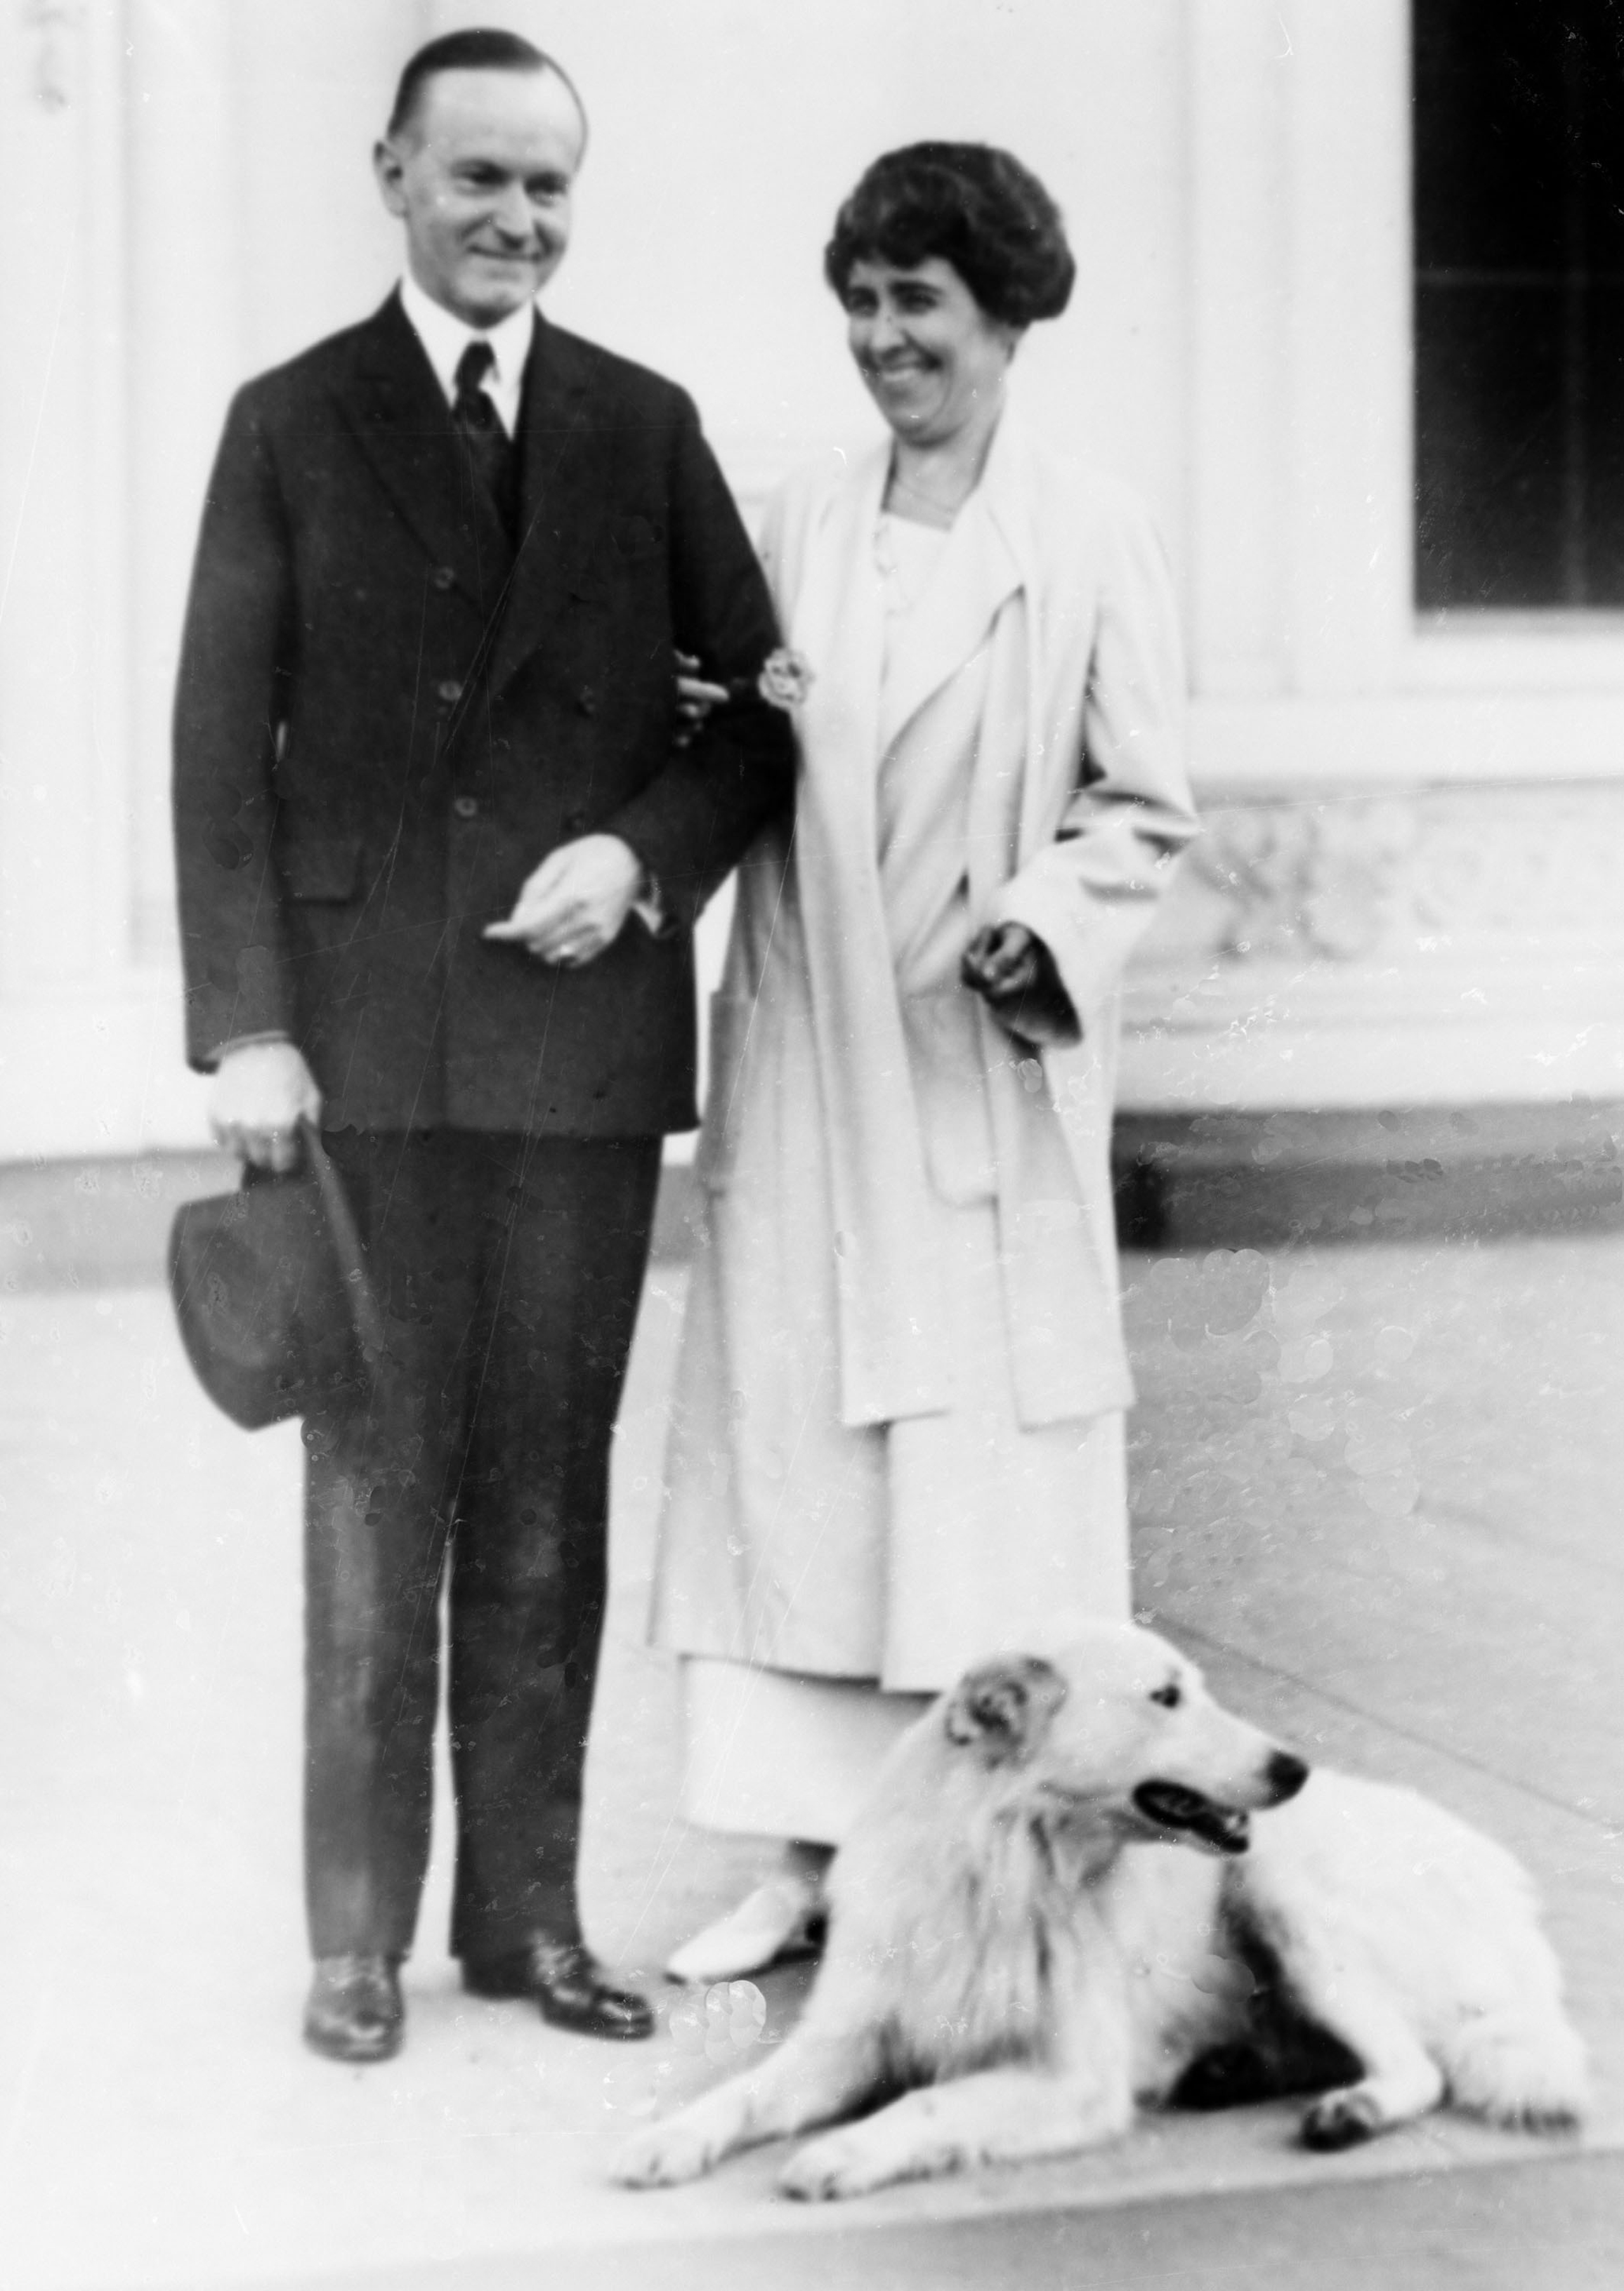 President-elect Calvin Coolidge and first lady Grace Coolidge are shown with their dog at the White House portico in Washington, D.C., after winning the election on Nov. 5, 1924.